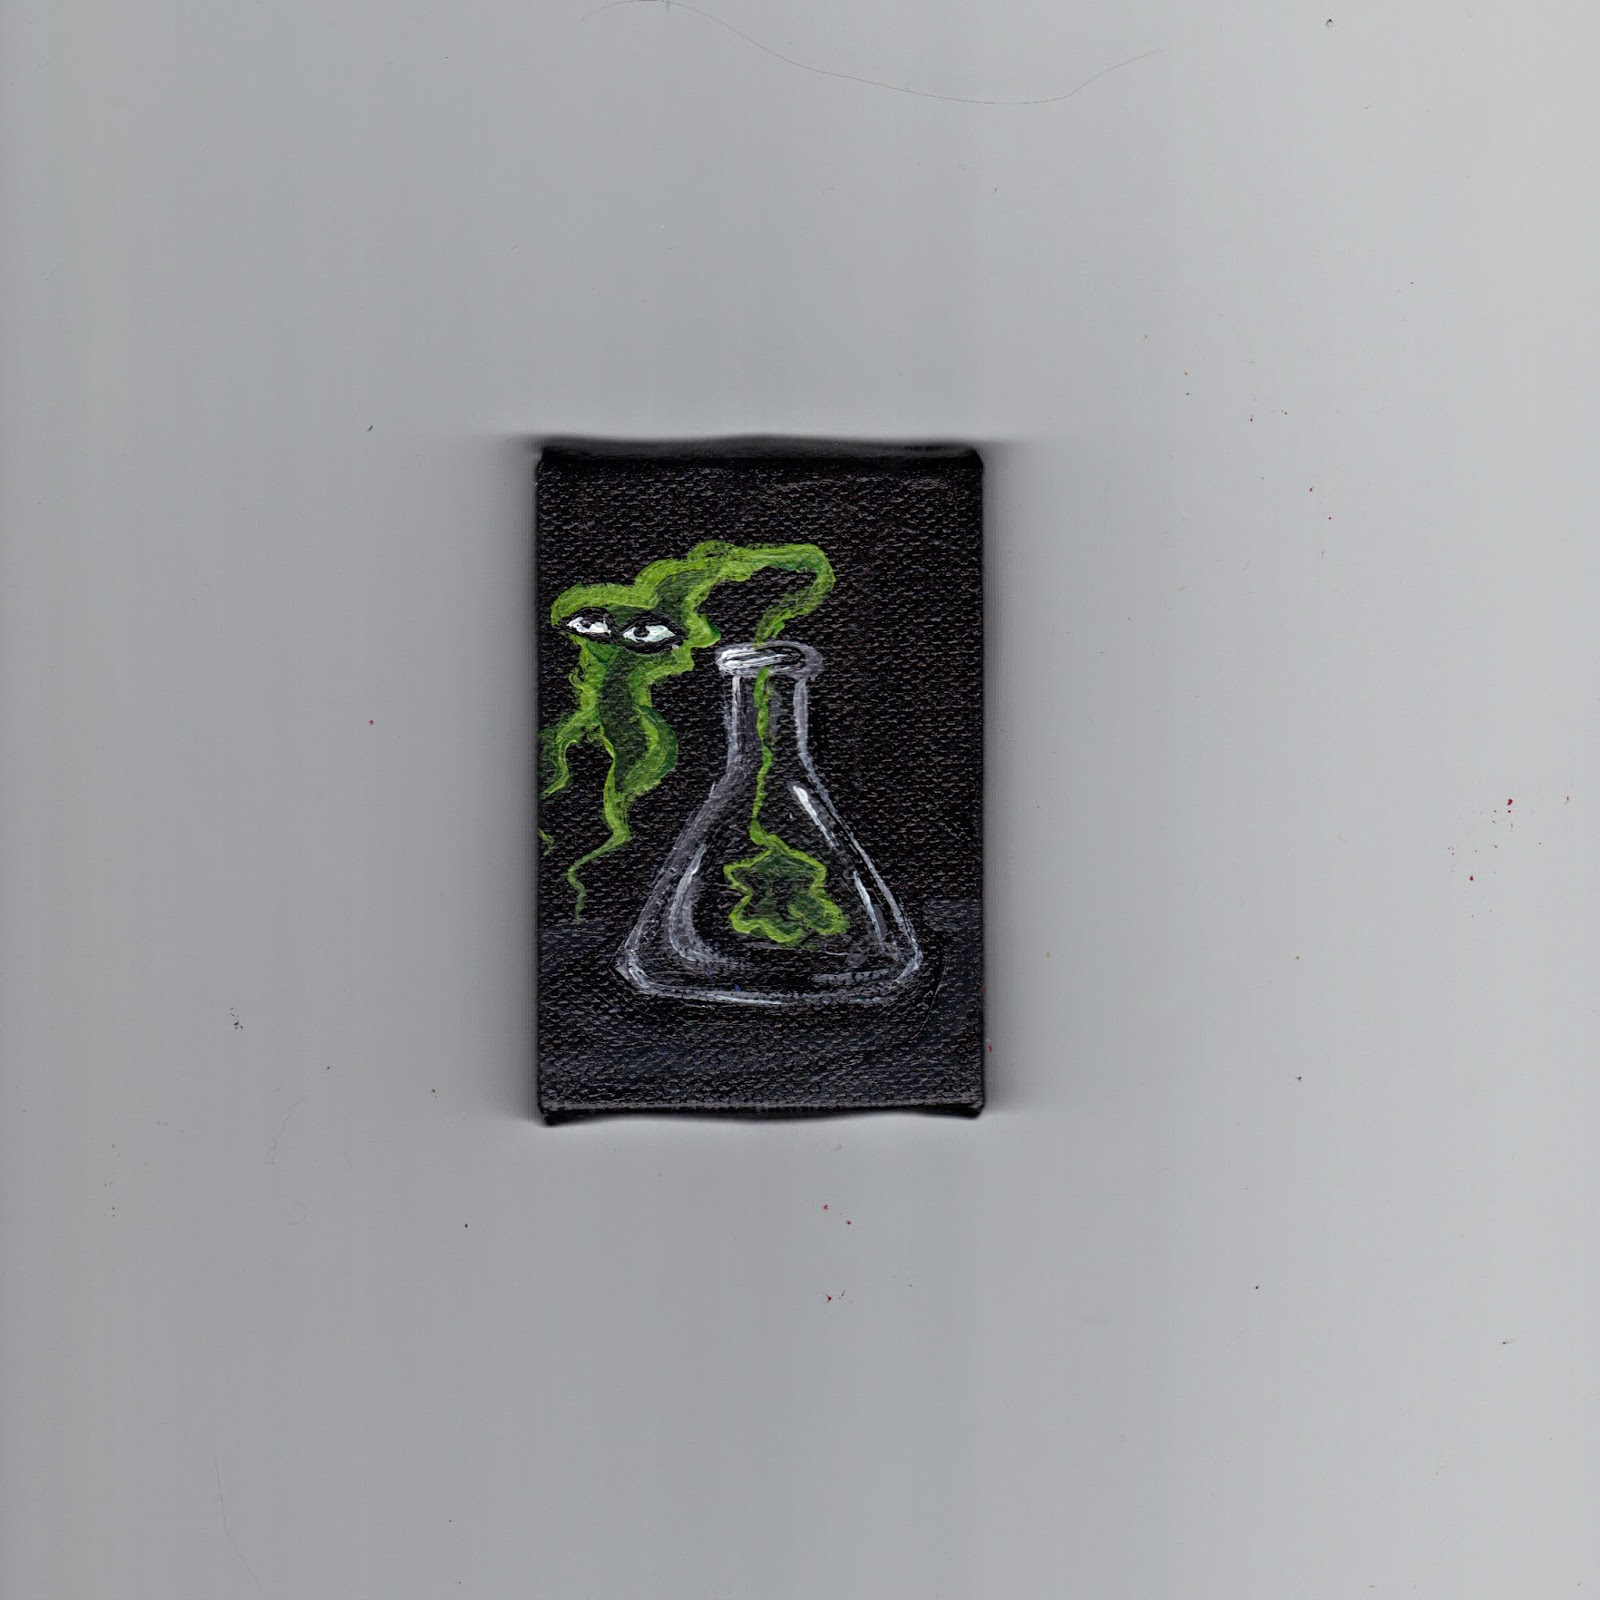 https://www.etsy.com/listing/170292095/miniature-acrylic-painting-green-ghost?ref=shop_home_active_11